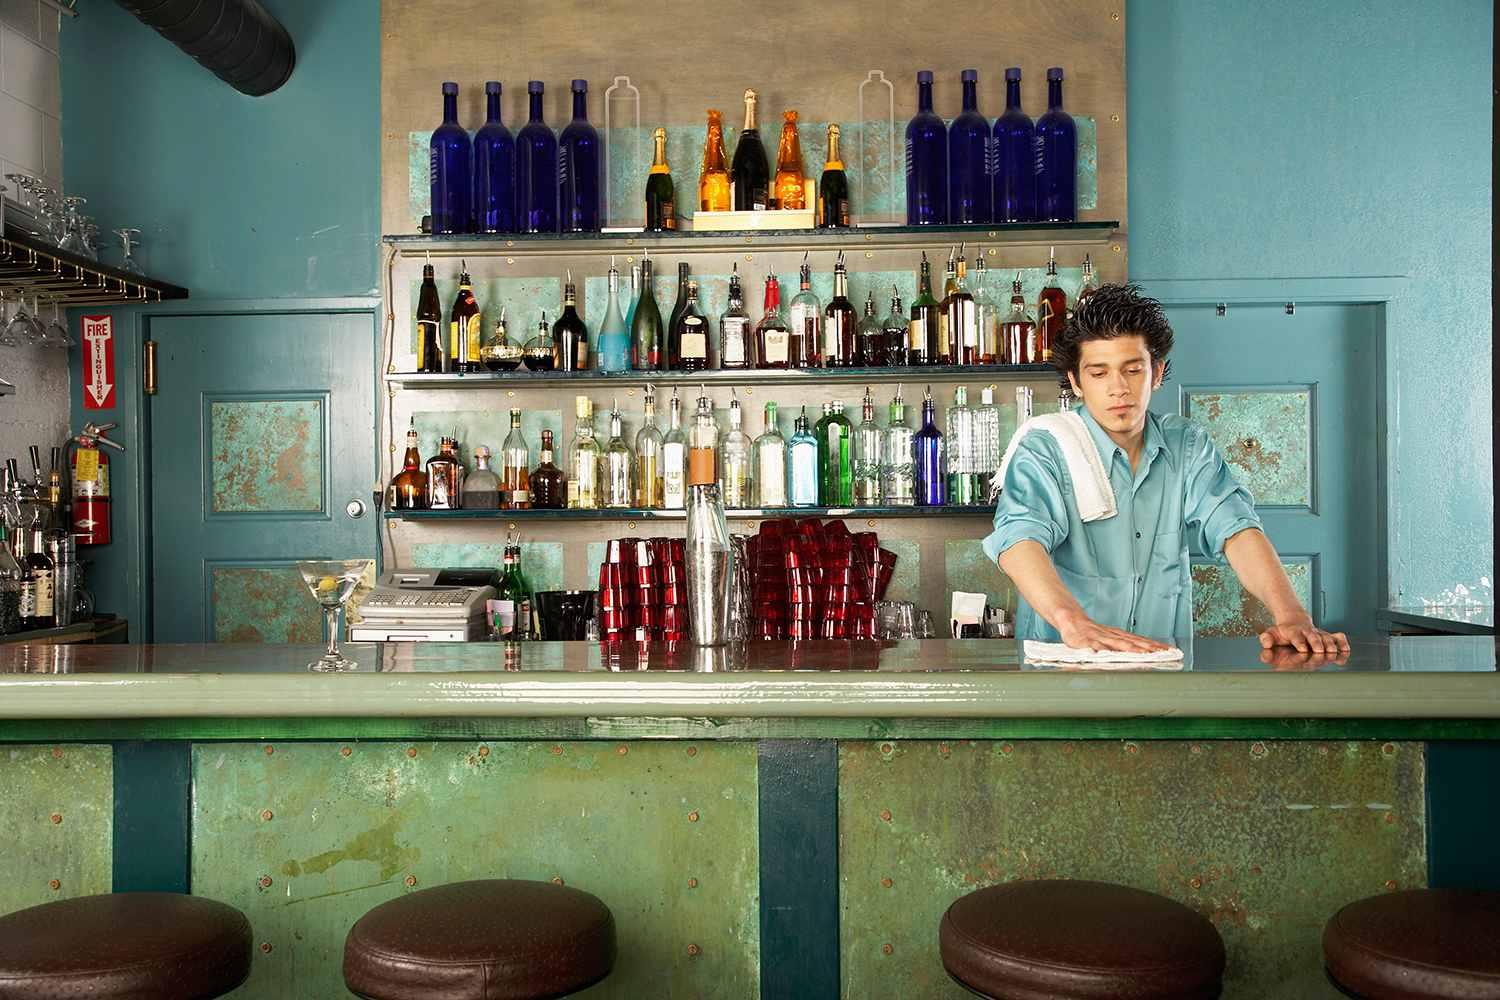 A bartender wiping down a counter